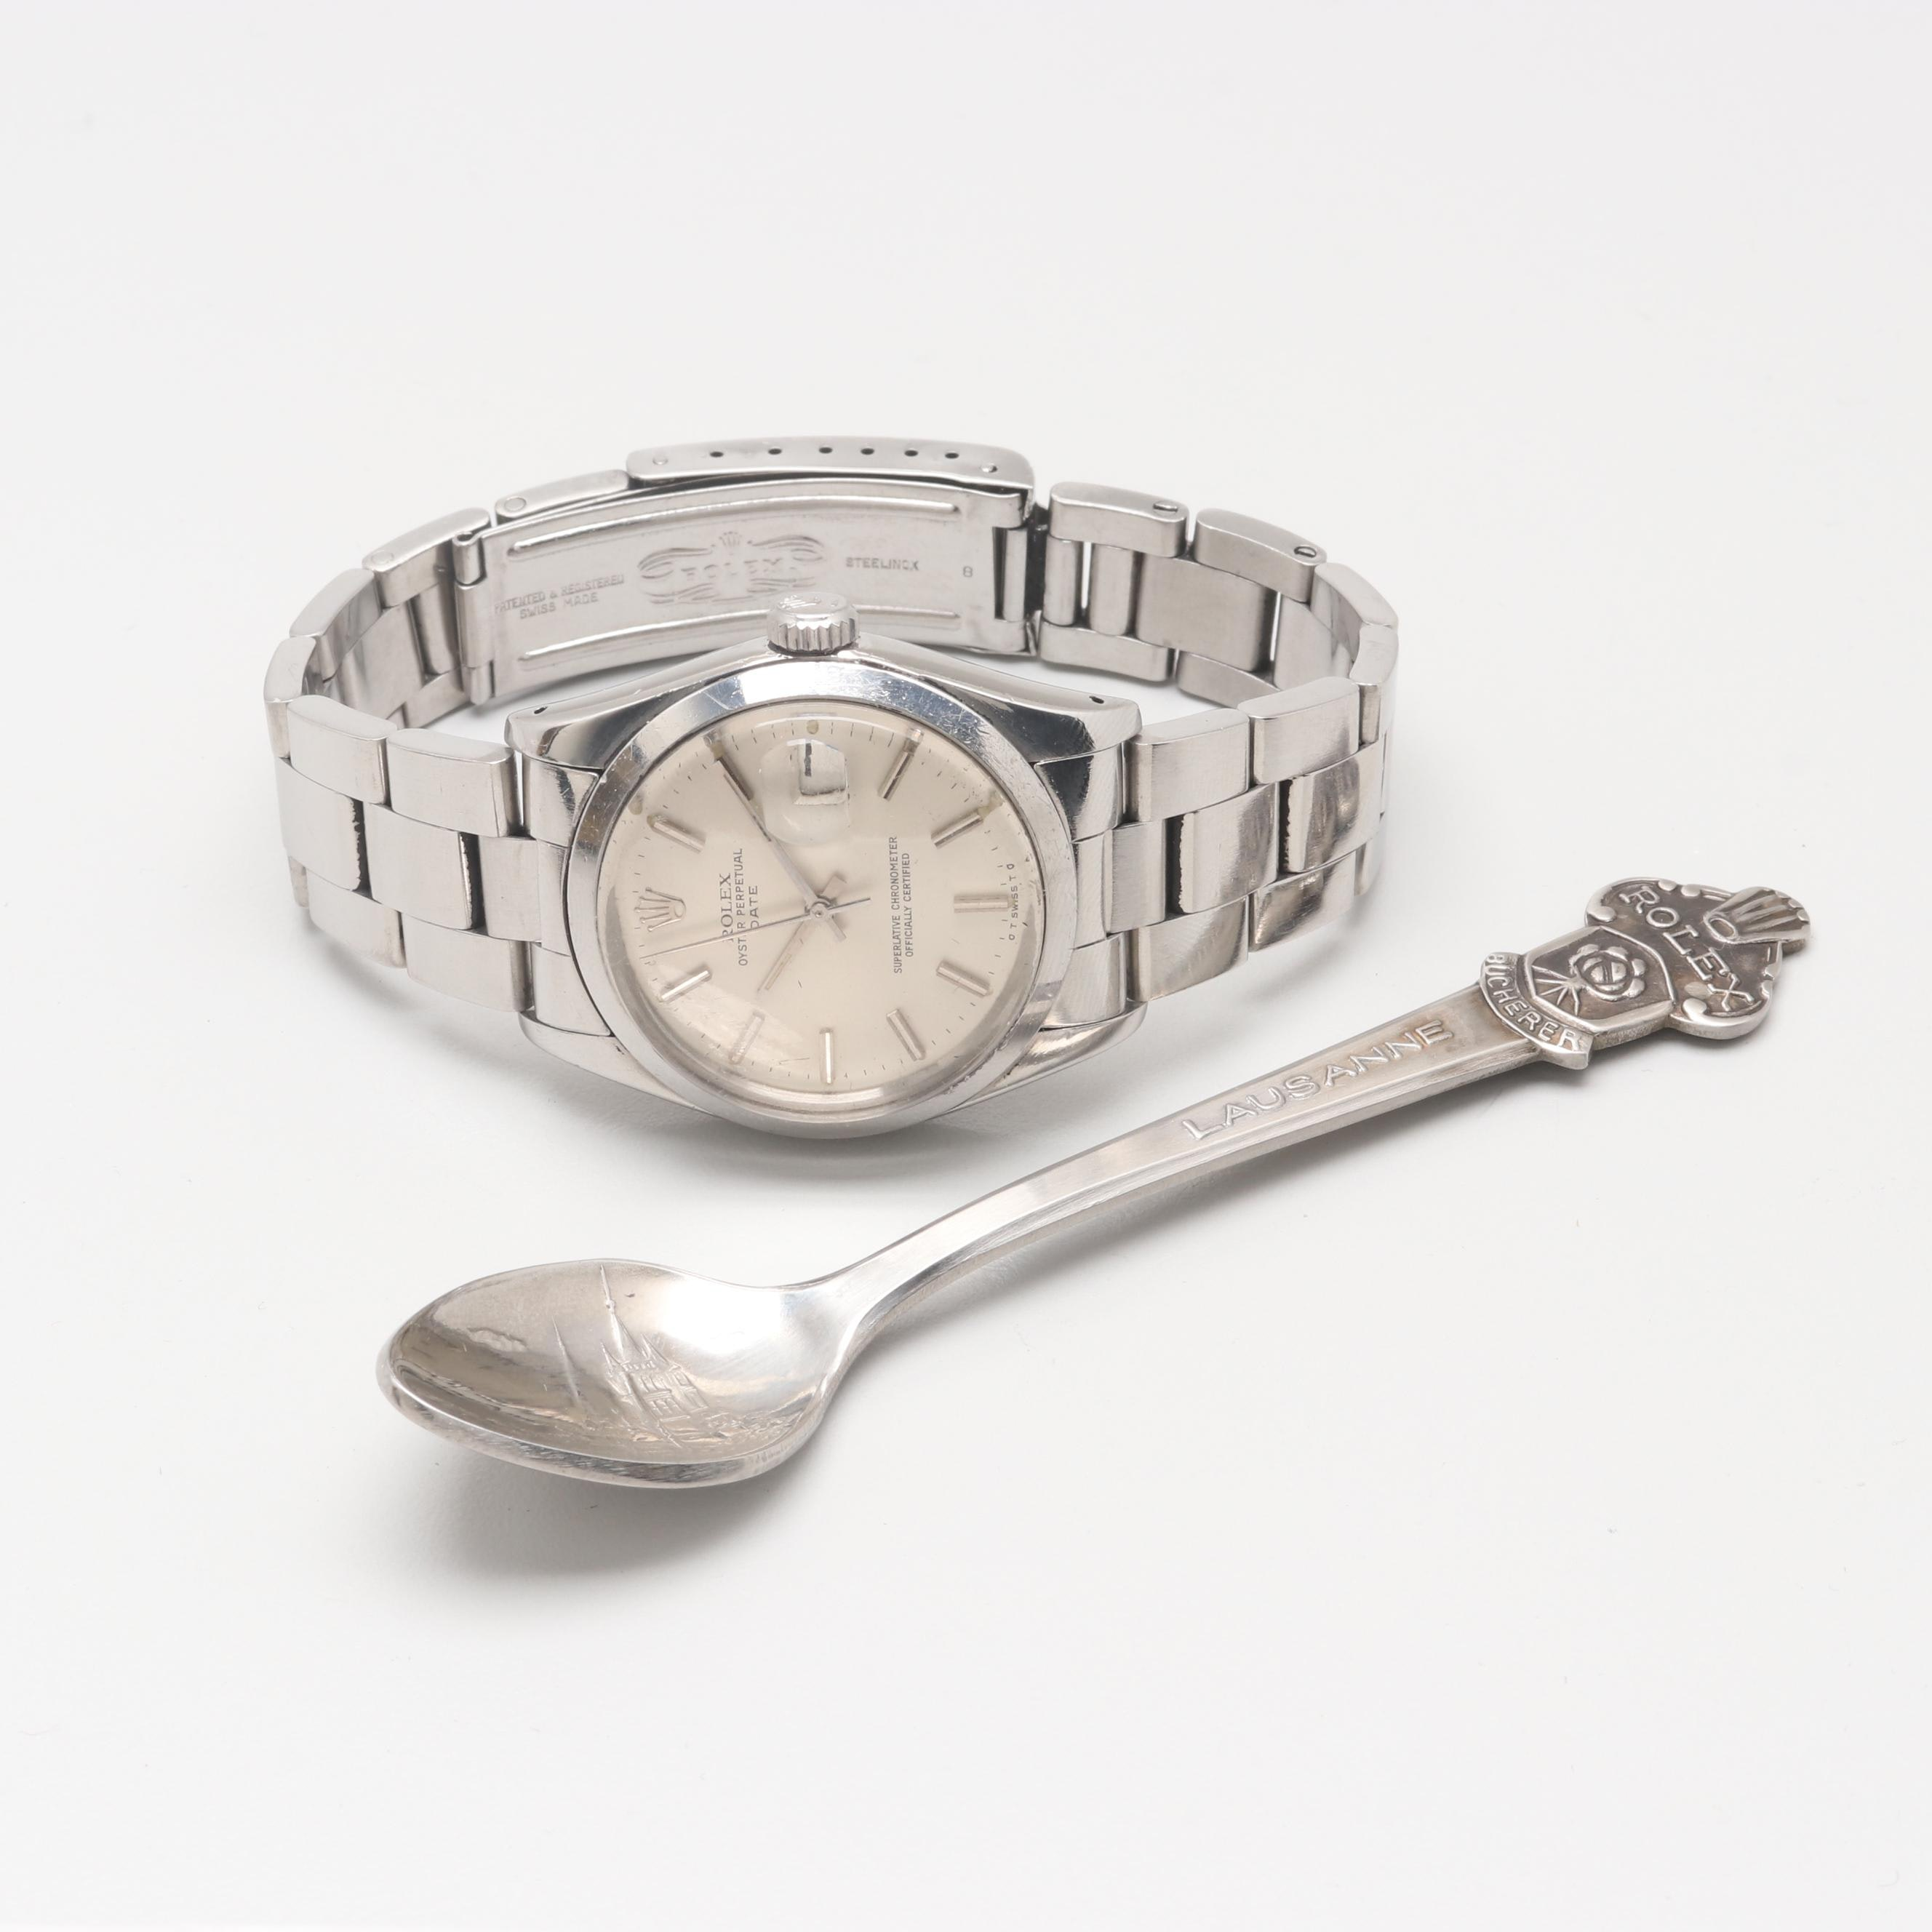 Circa 1974 Rolex Oyster Perpetual Date Wristwatch with Souvenir Spoon